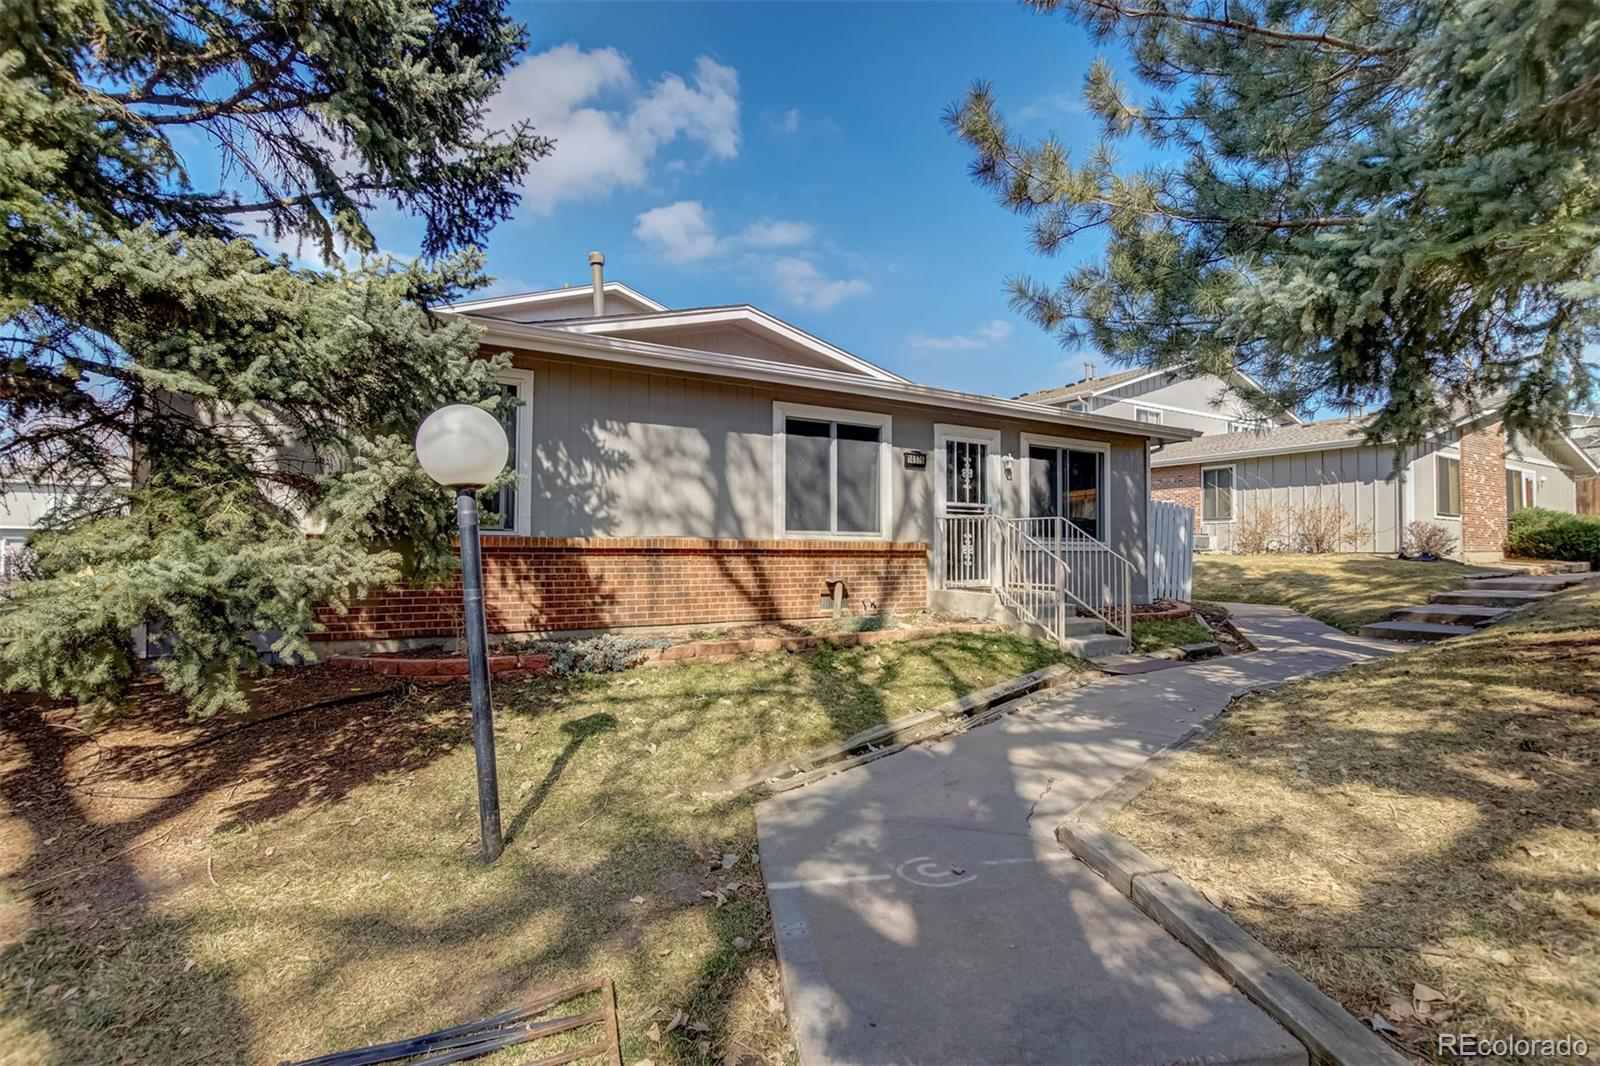 MLS# 7587510 - 3 - 14576 E 13th Avenue, Aurora, CO 80011